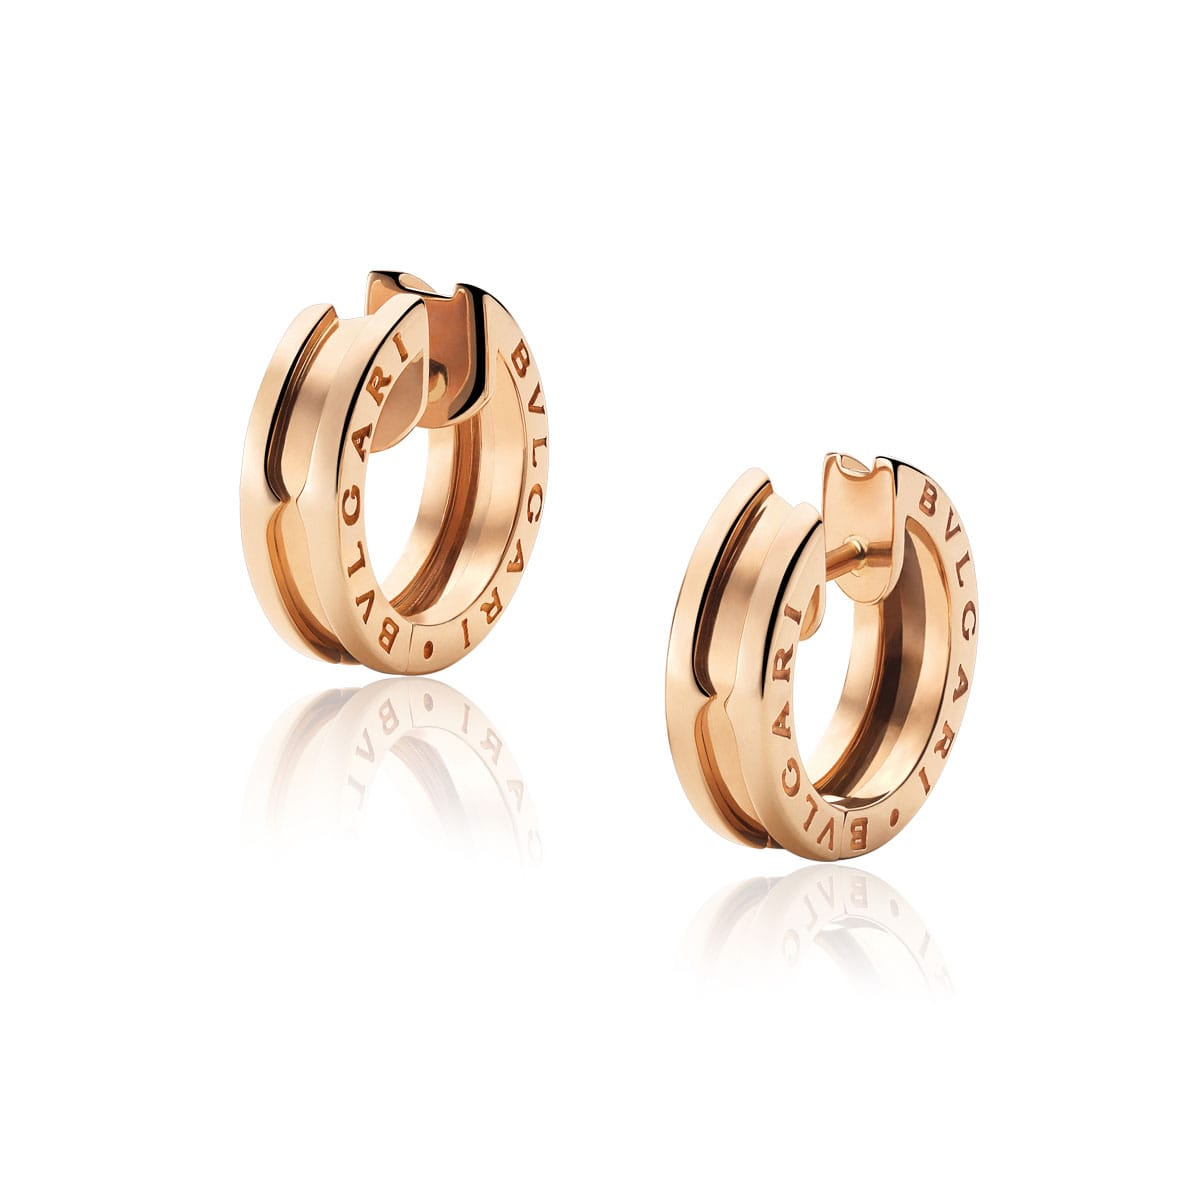 74a1fb4d926 Bulgari B.Zero1 Earrings - Lionel Meylan Vevey